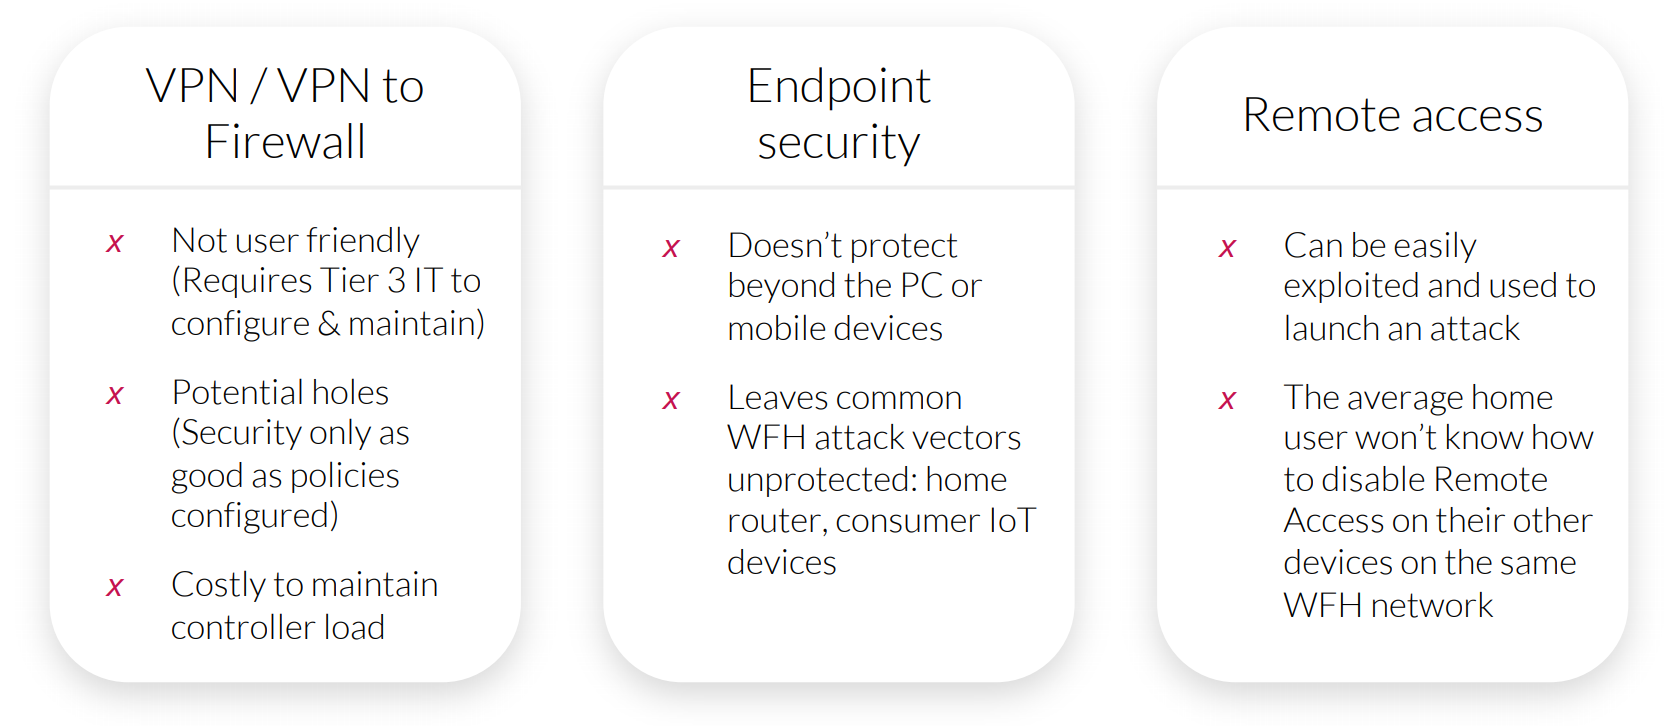 """<img src=""""VPN-firewall-endpoint-security-remote-access-the-table-shows-where-traditional-enterprise-security-solutions-are-falling-short.jpg"""" alt=""""hybrid-work-the-new-greenfield-opportunity-for-internet-service-providers-connections-webinar-recap"""">"""